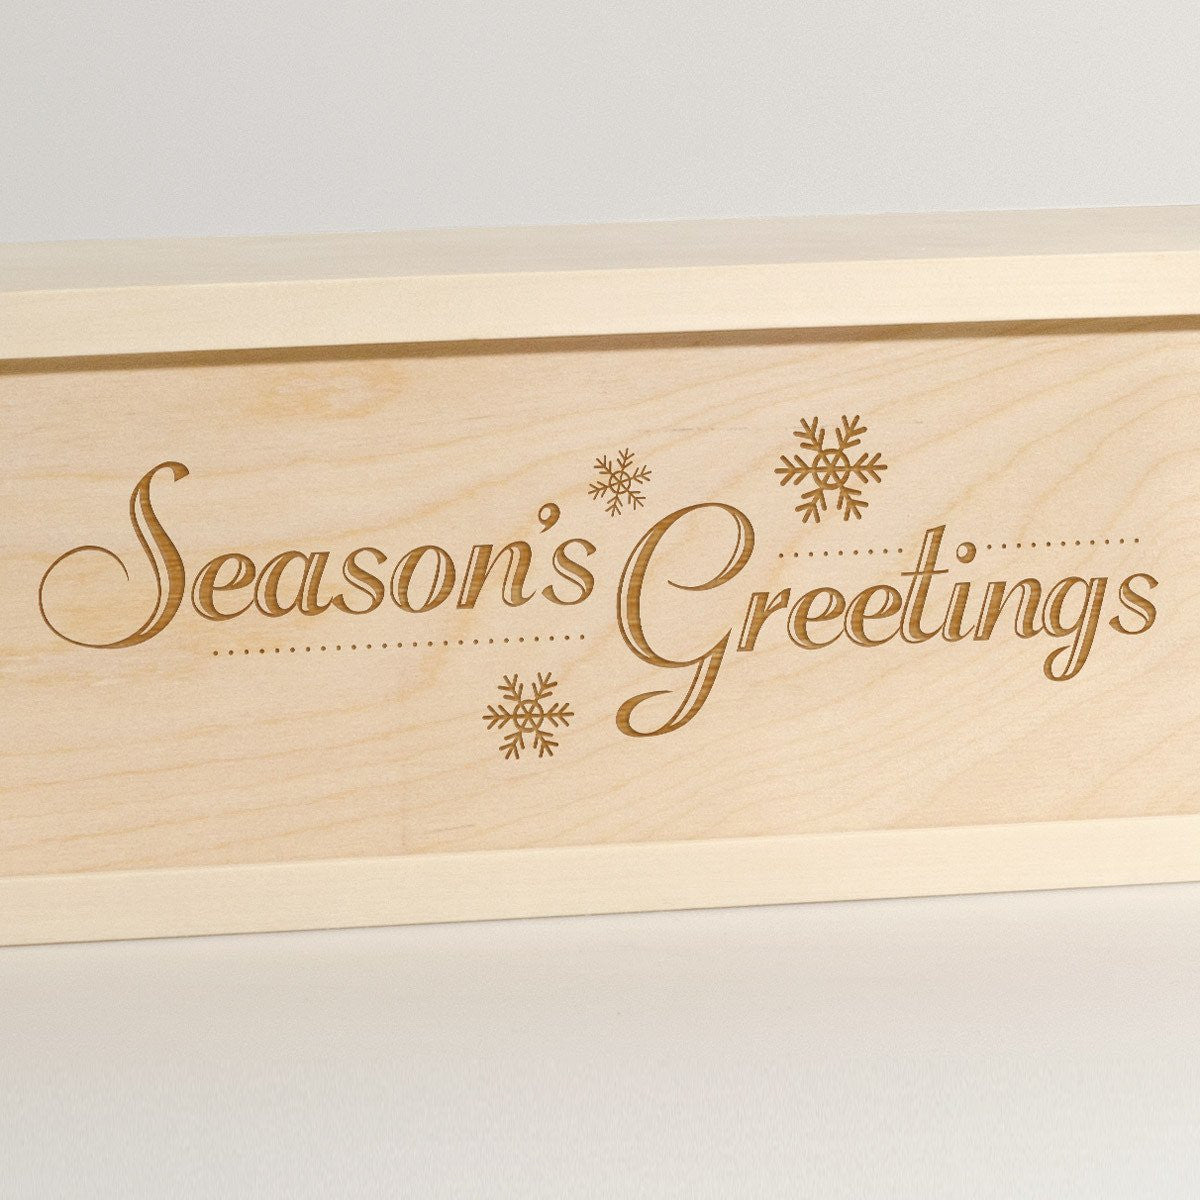 Season's Greetings - Wine Box - Detail Image